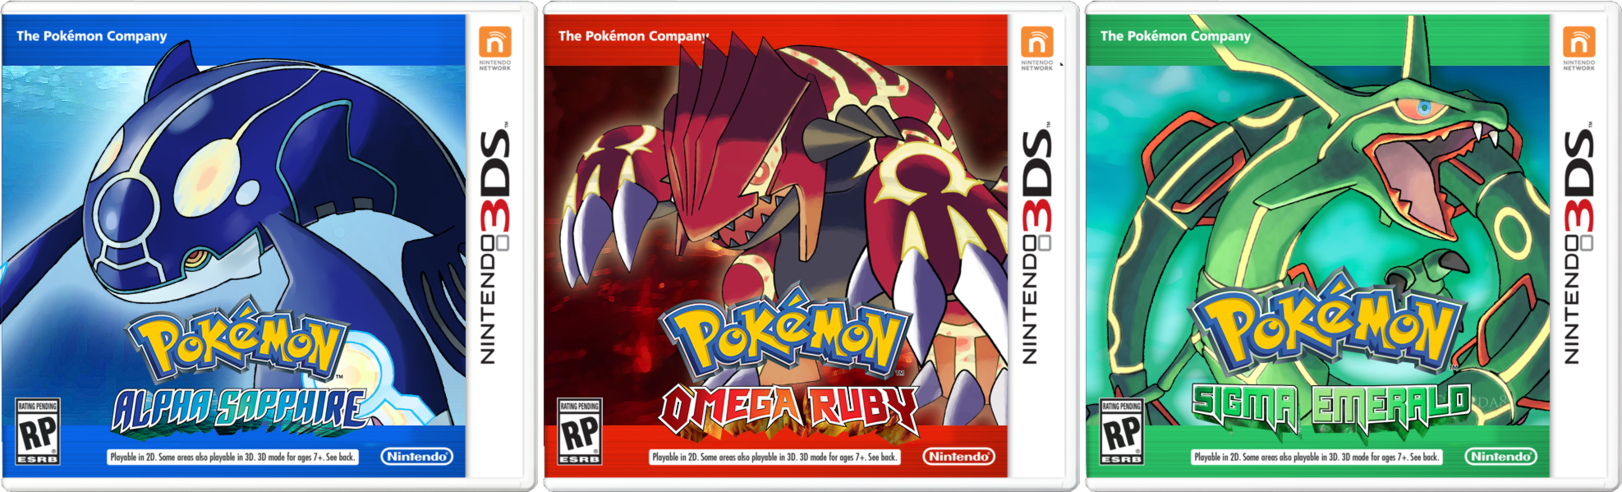 Free Download Pokemon Omega Ruby Alpha Sapphire Sigma Emerald By